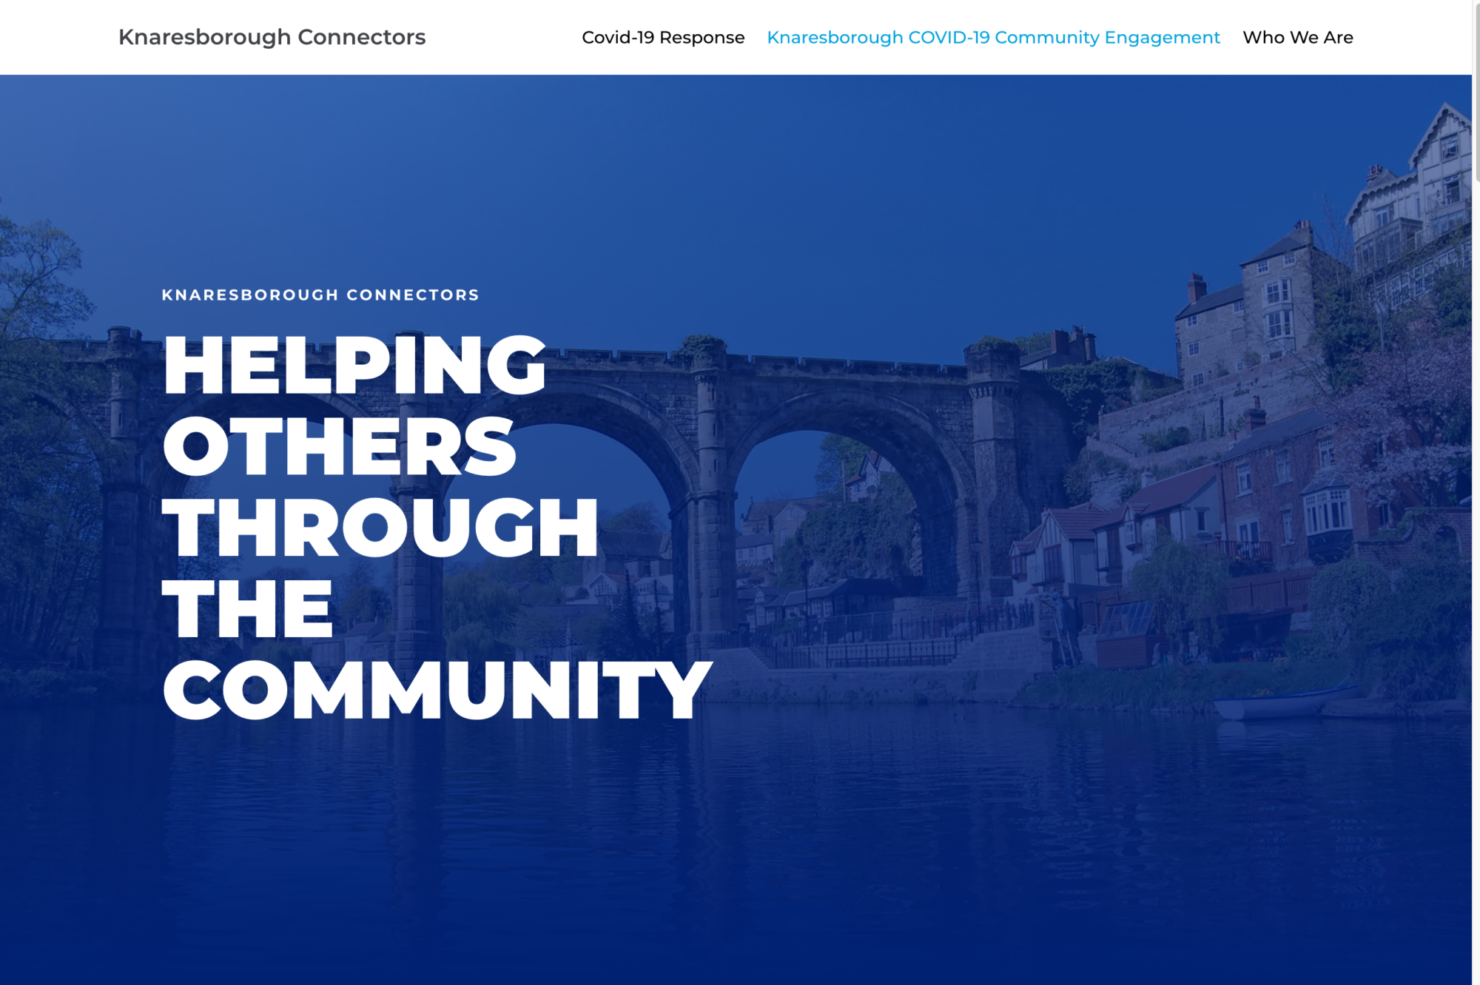 An image showing the Knaresborough Connectors website